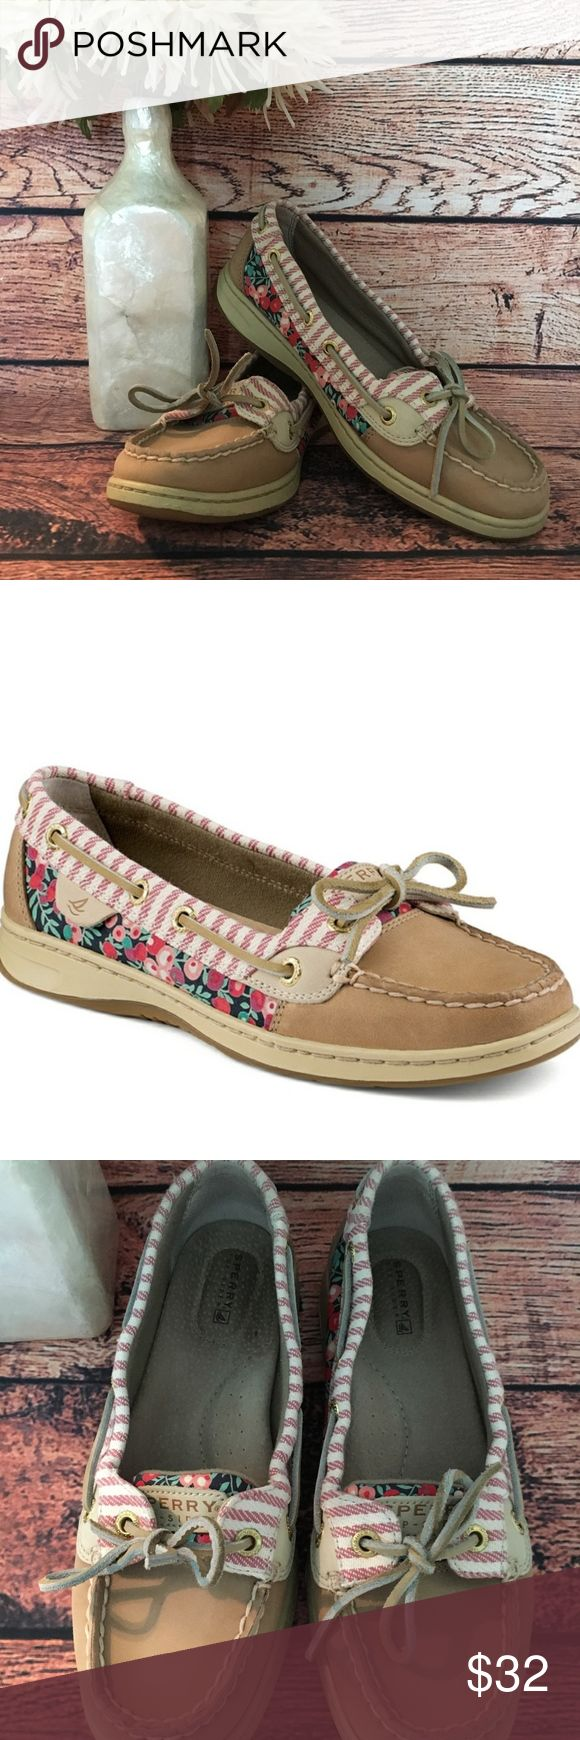 Sperry Angelfish Liberty Floral Boat Shoe SZ 7.5 Sperry Top-Sider Angelfish Boat shoes. Size 7.5 Womens. Liberty floral print with stripes, floral print almost looks like cherries. Great used condition!! Sperry Shoes Flats & Loafers